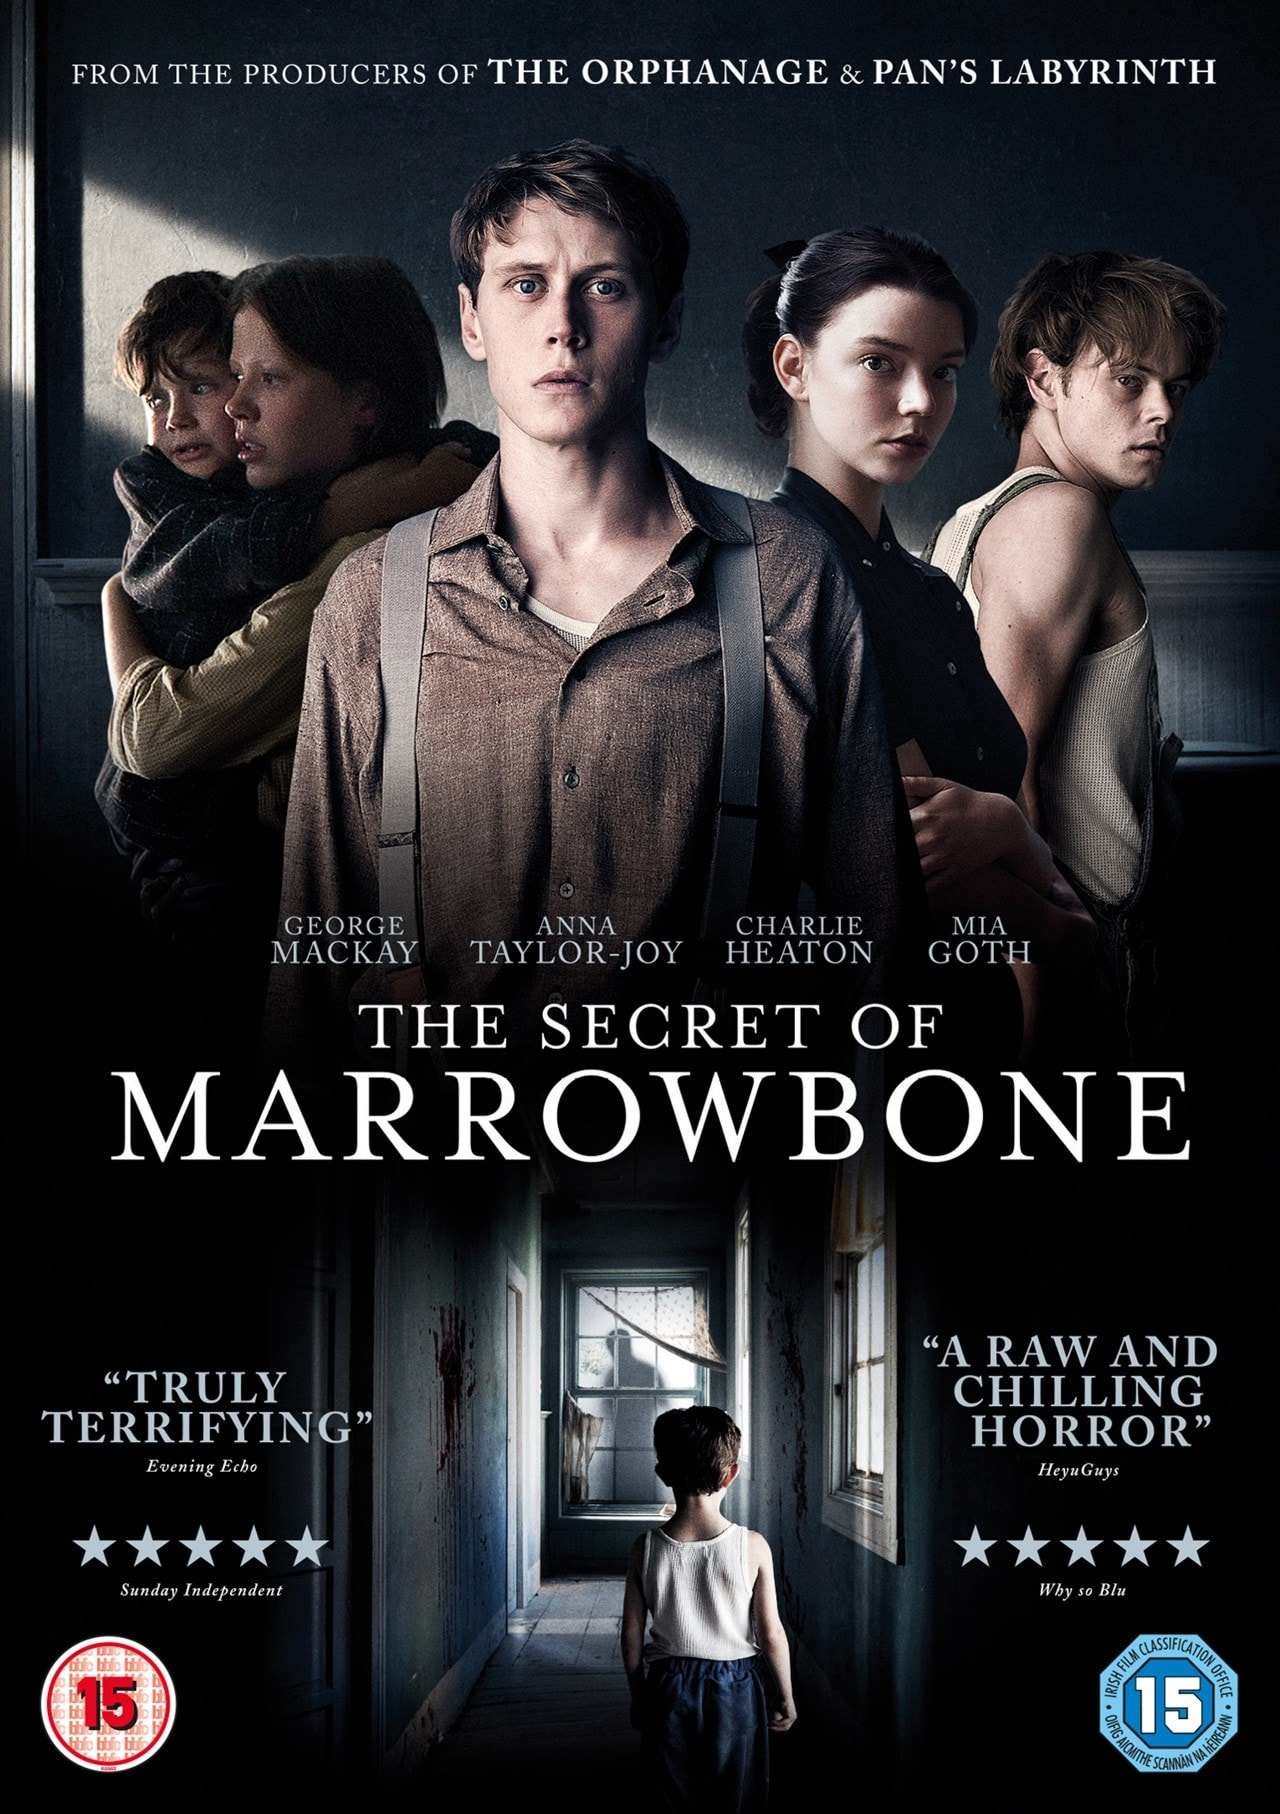 The Secret of Marrowbone - 1